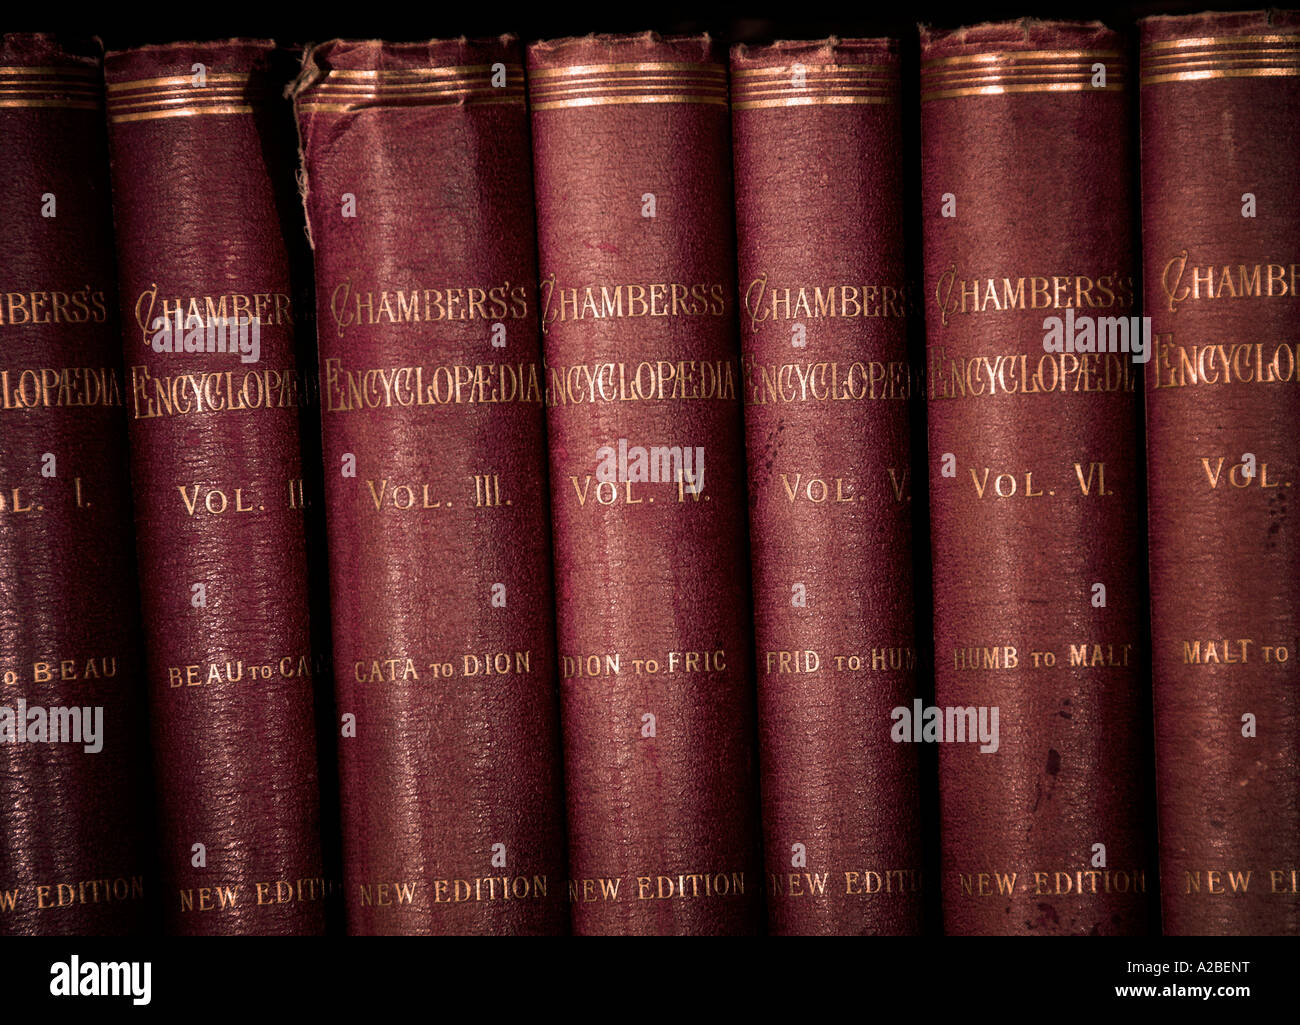 Chambers' Encyclopaedia 1901 EDITORIAL USE ONLY - Stock Image